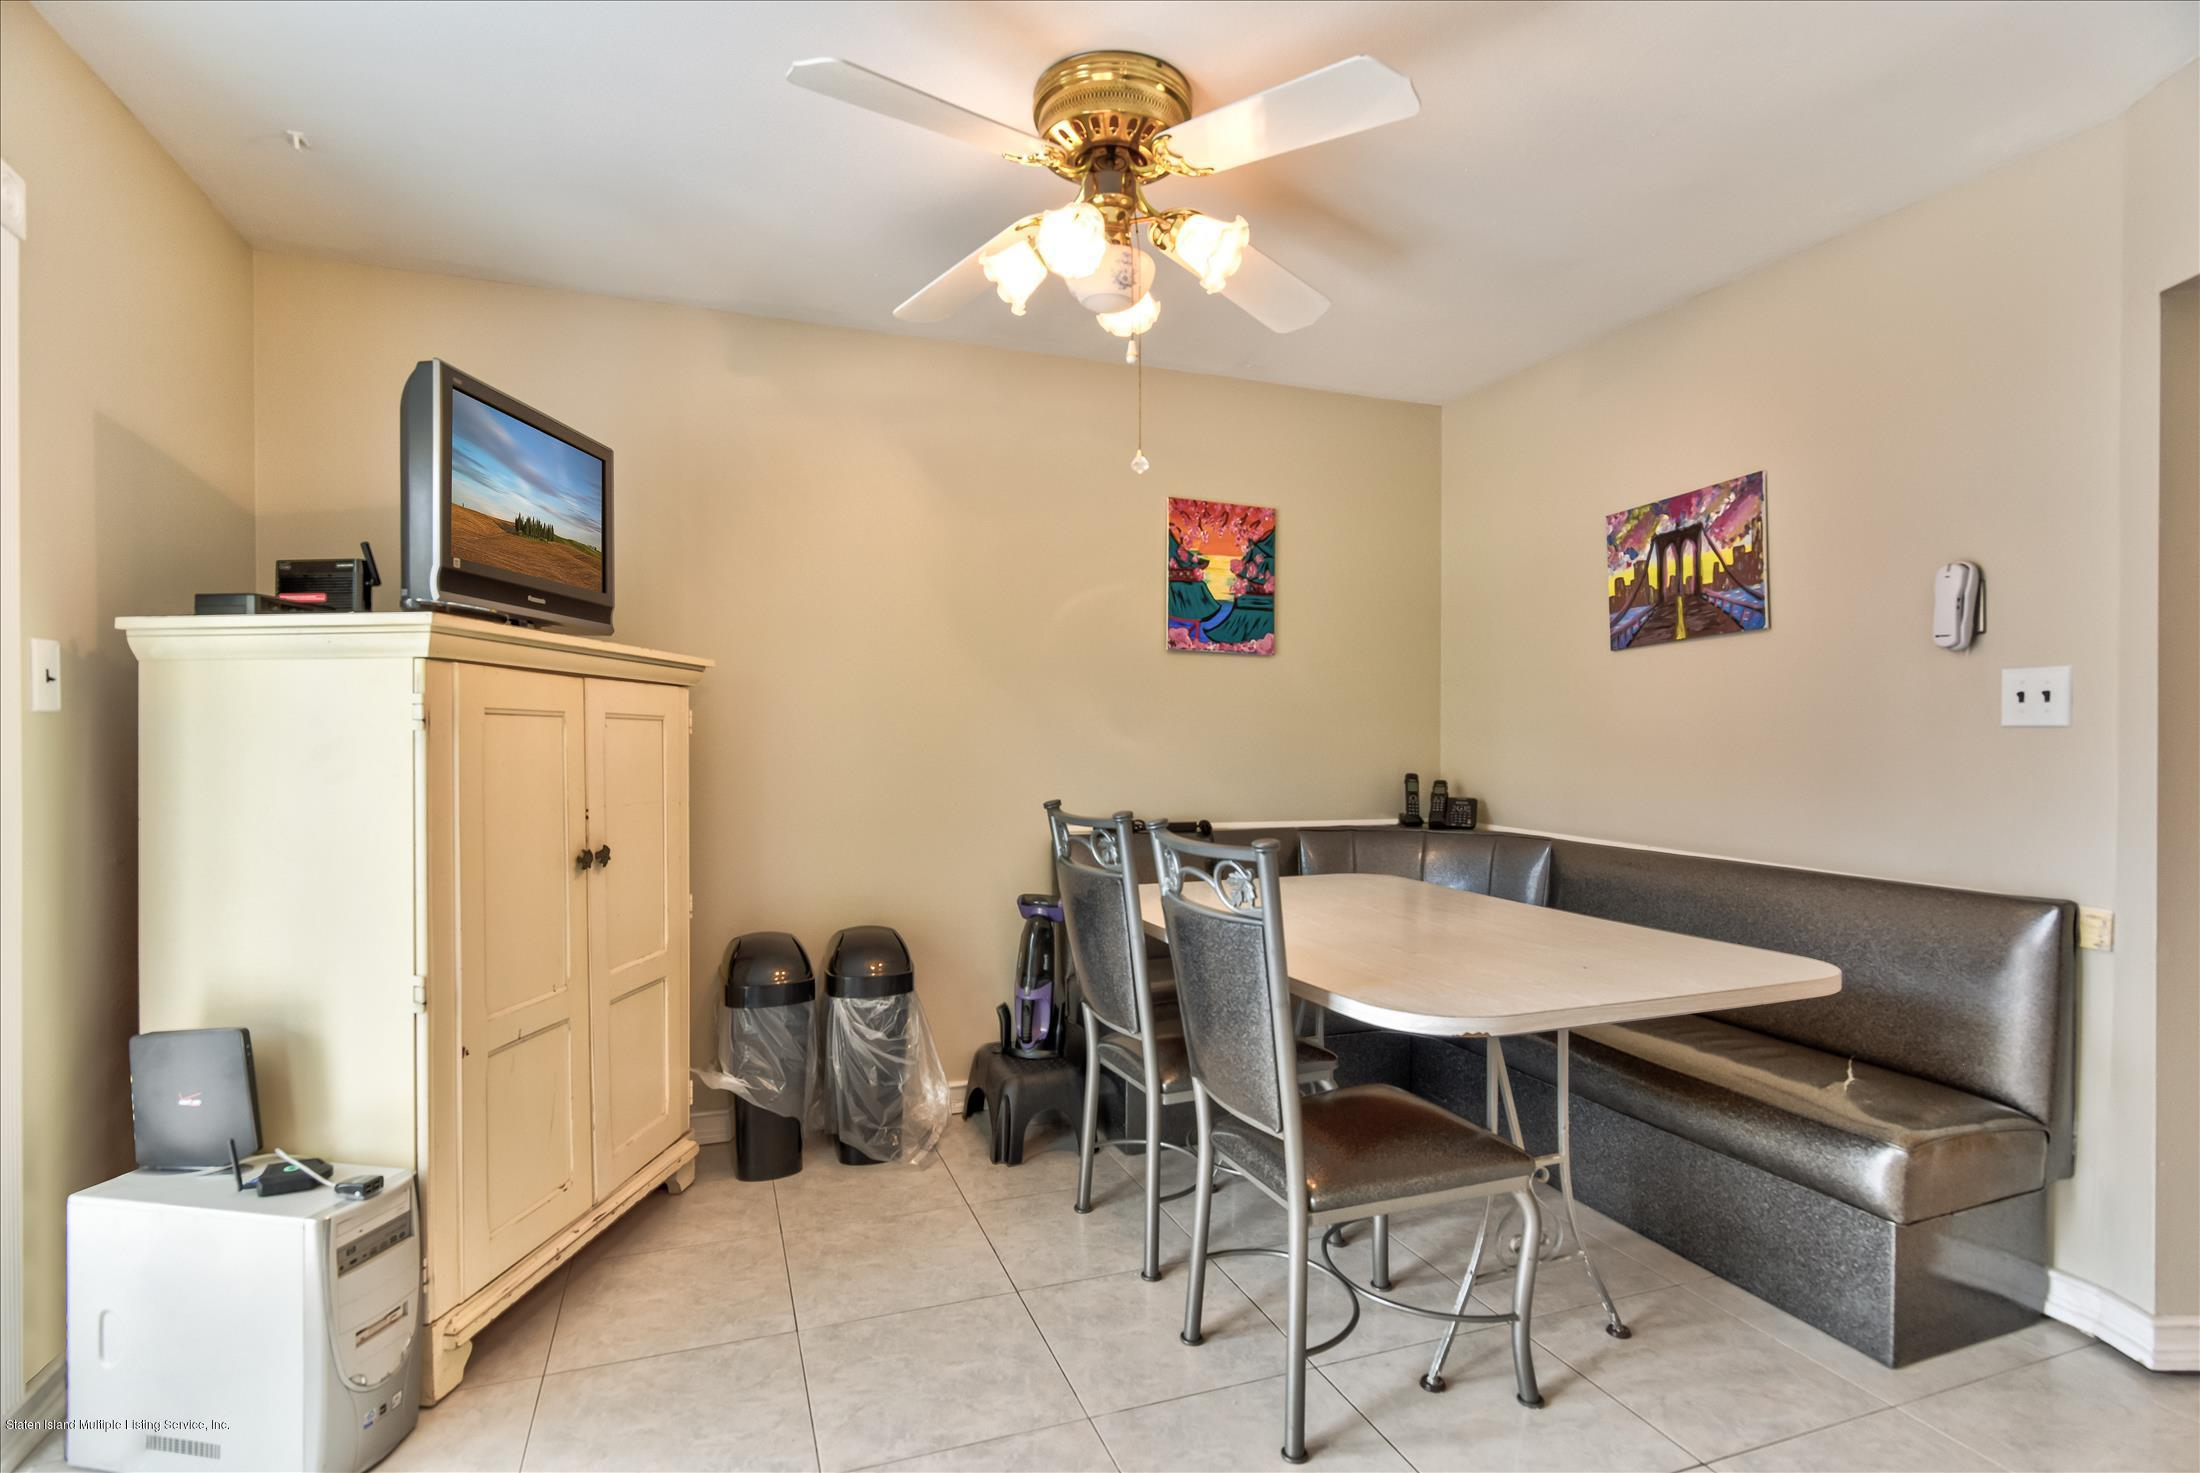 Single Family - Attached 833 Rensselaer Avenue  Staten Island, NY 10309, MLS-1125461-24